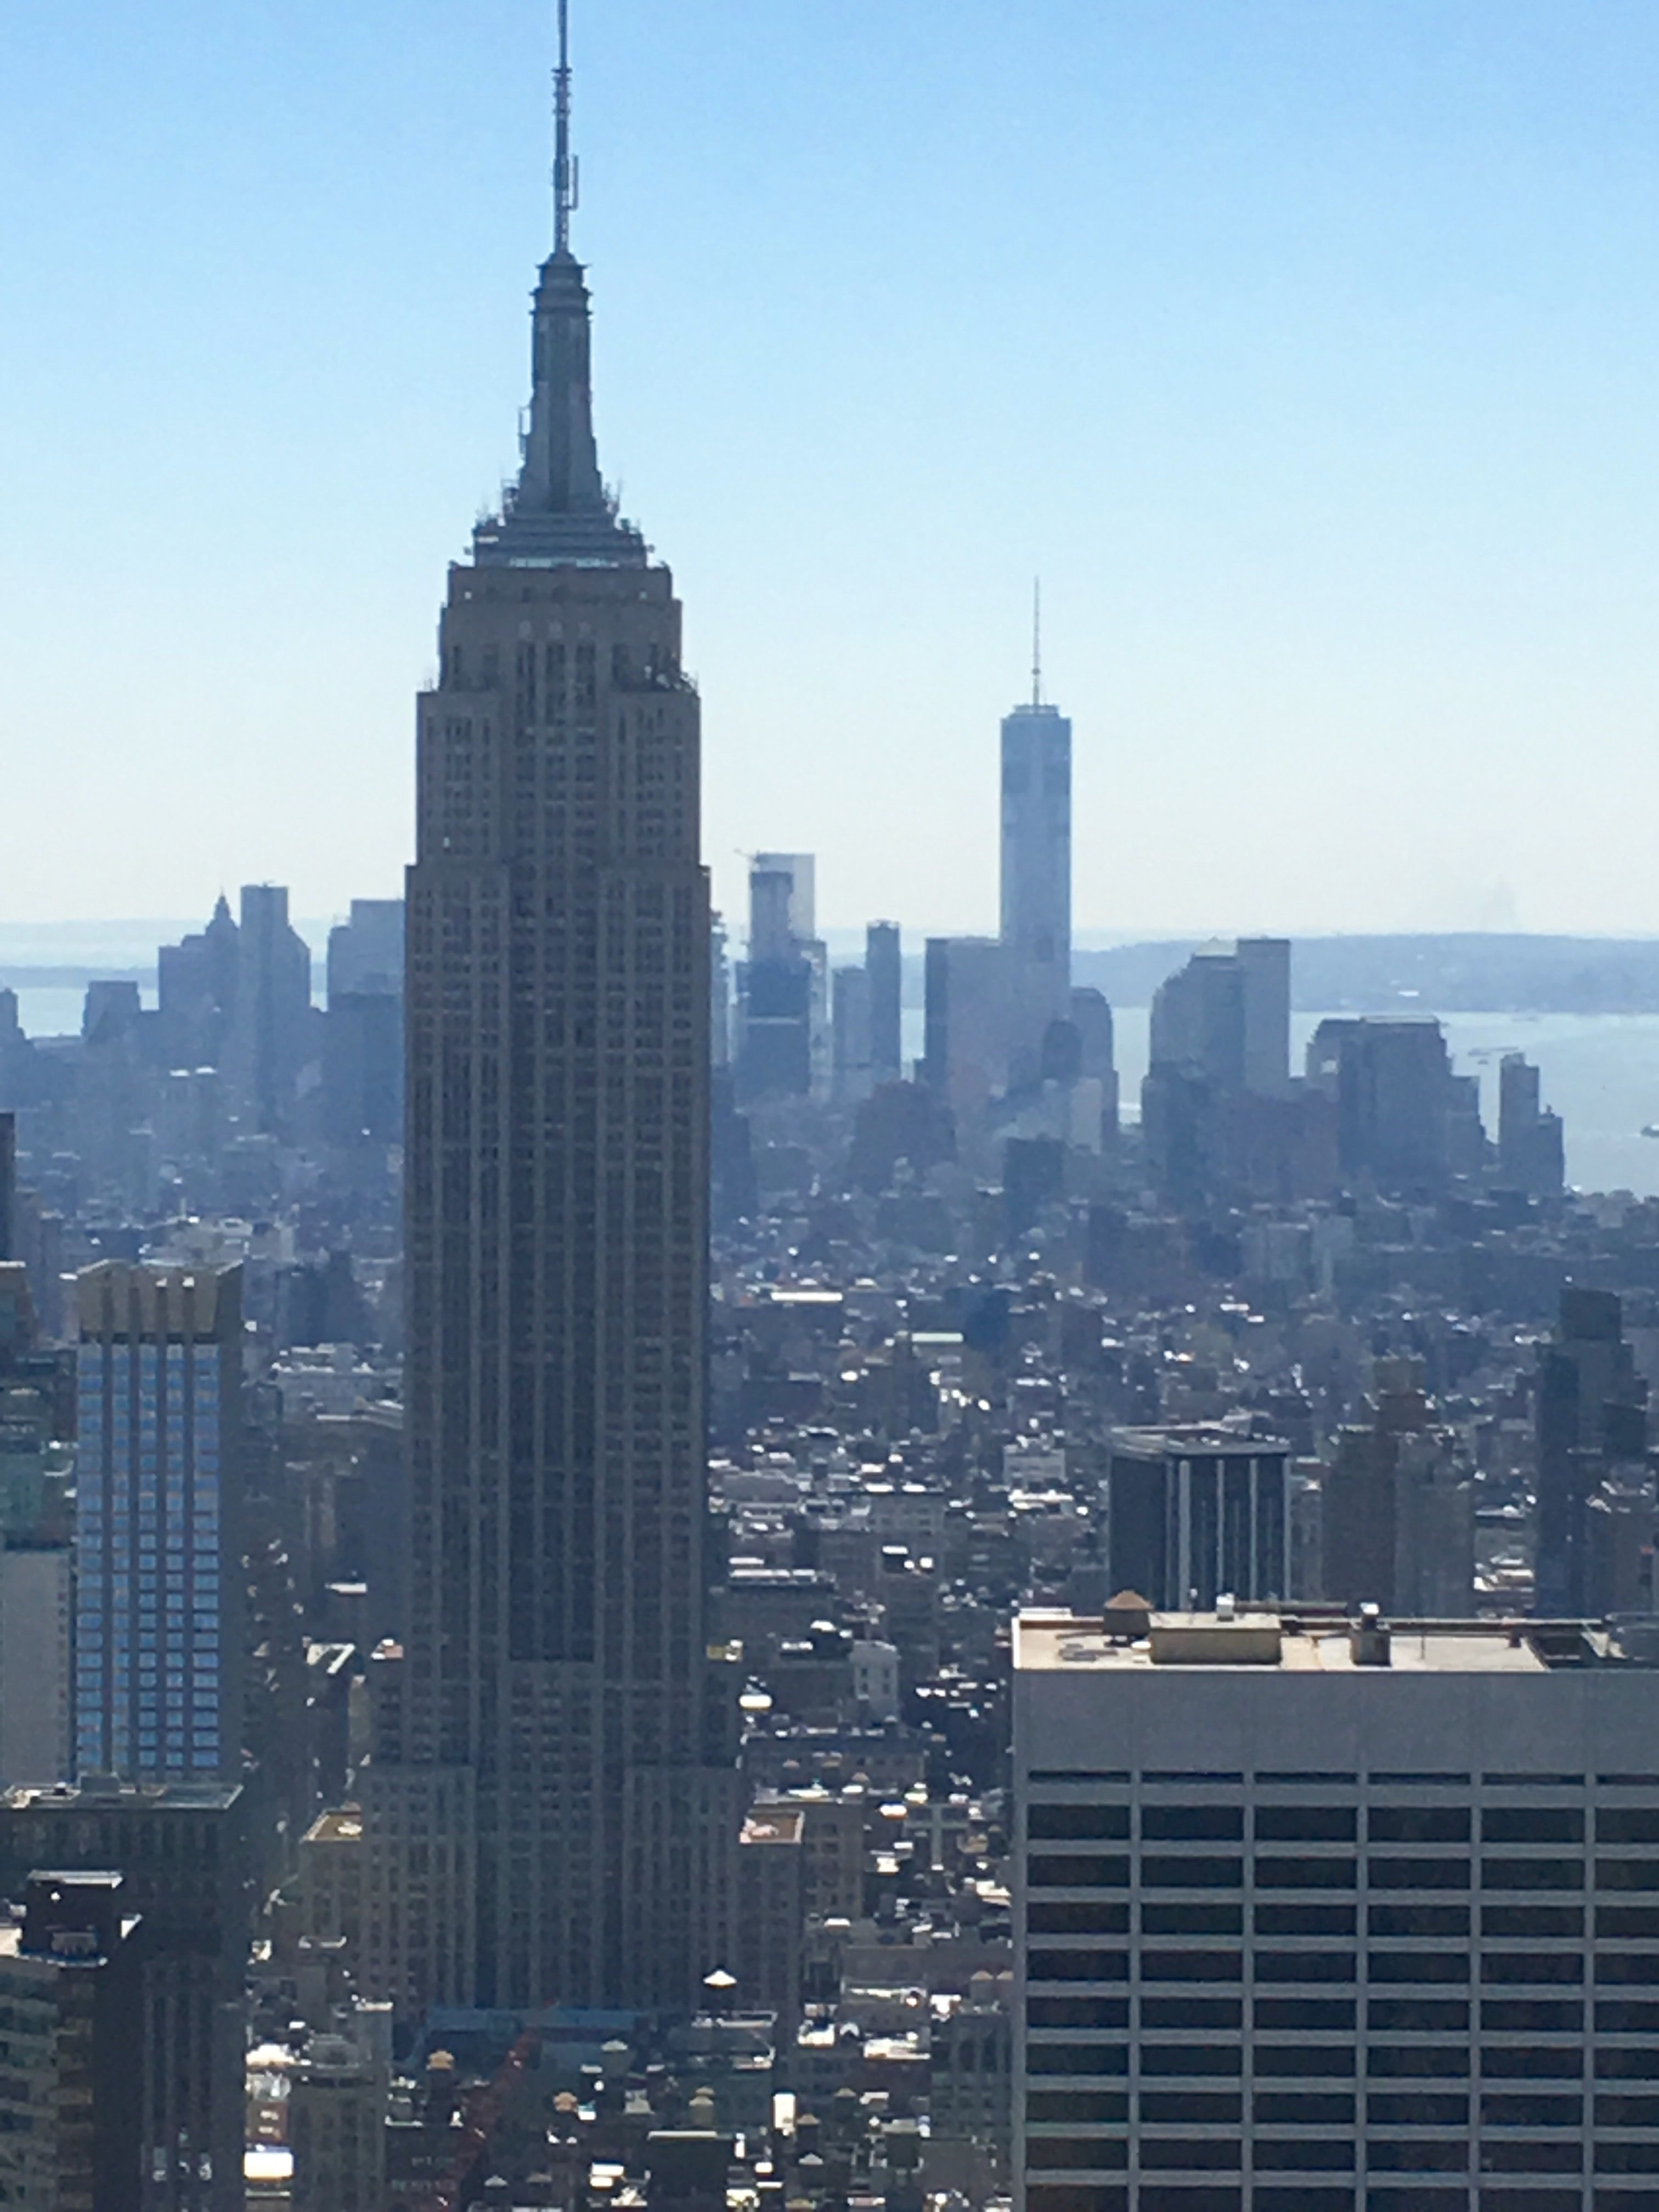 Storytelling New York City Photography Top Of The Rock Empire State Building Freedom Tower On A Clear Day Empire State Building City Photography New York